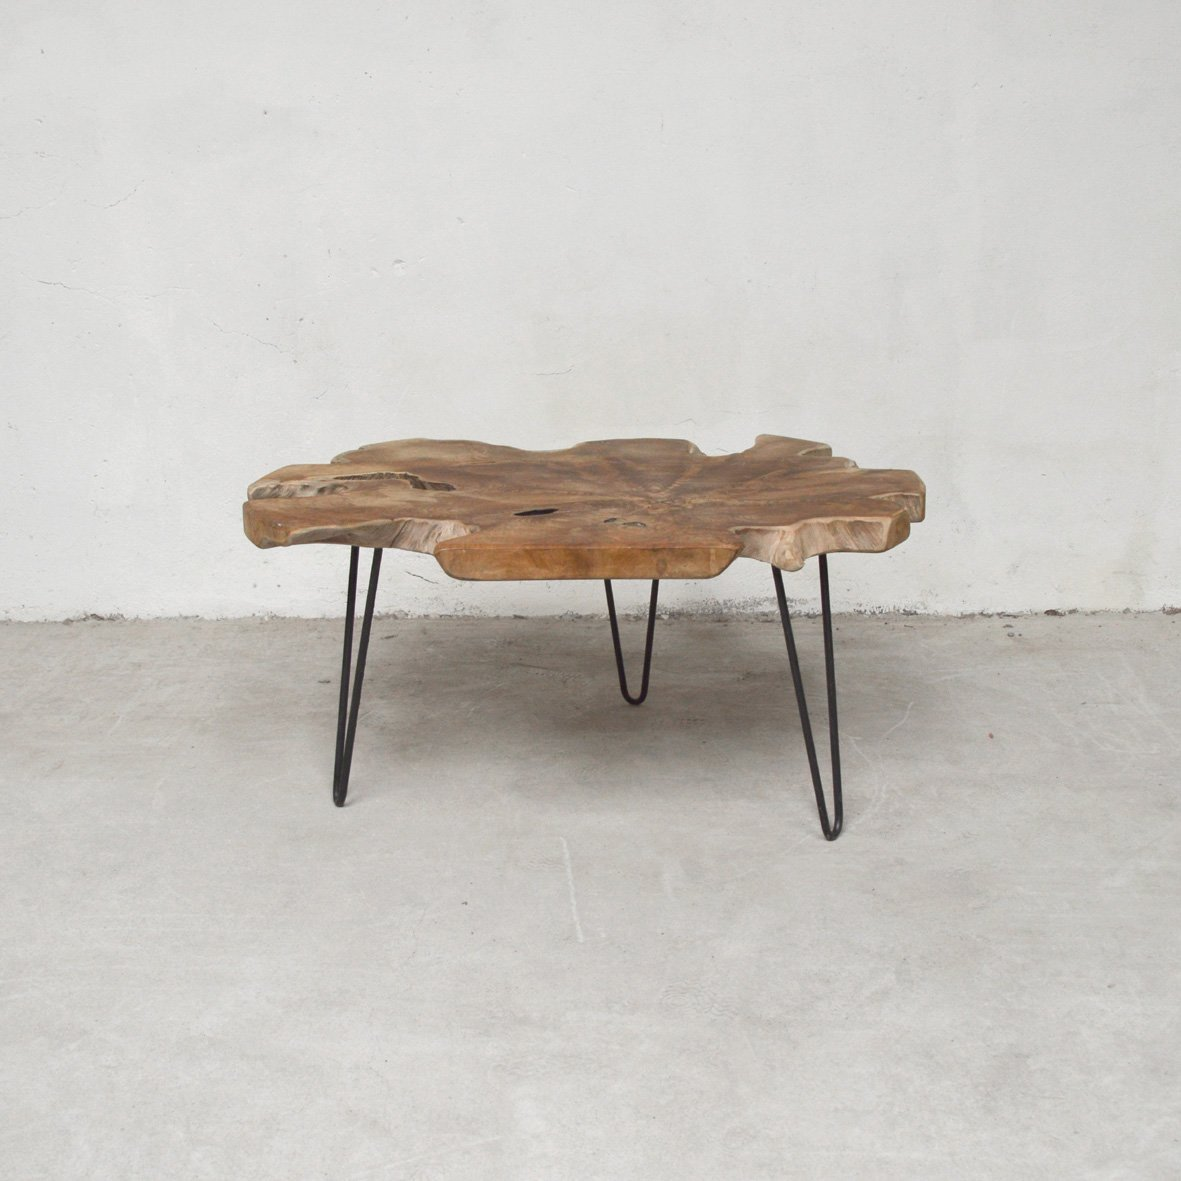 Old Teak Coffee Table: Vintage Teak Coffee Table For Sale At Pamono